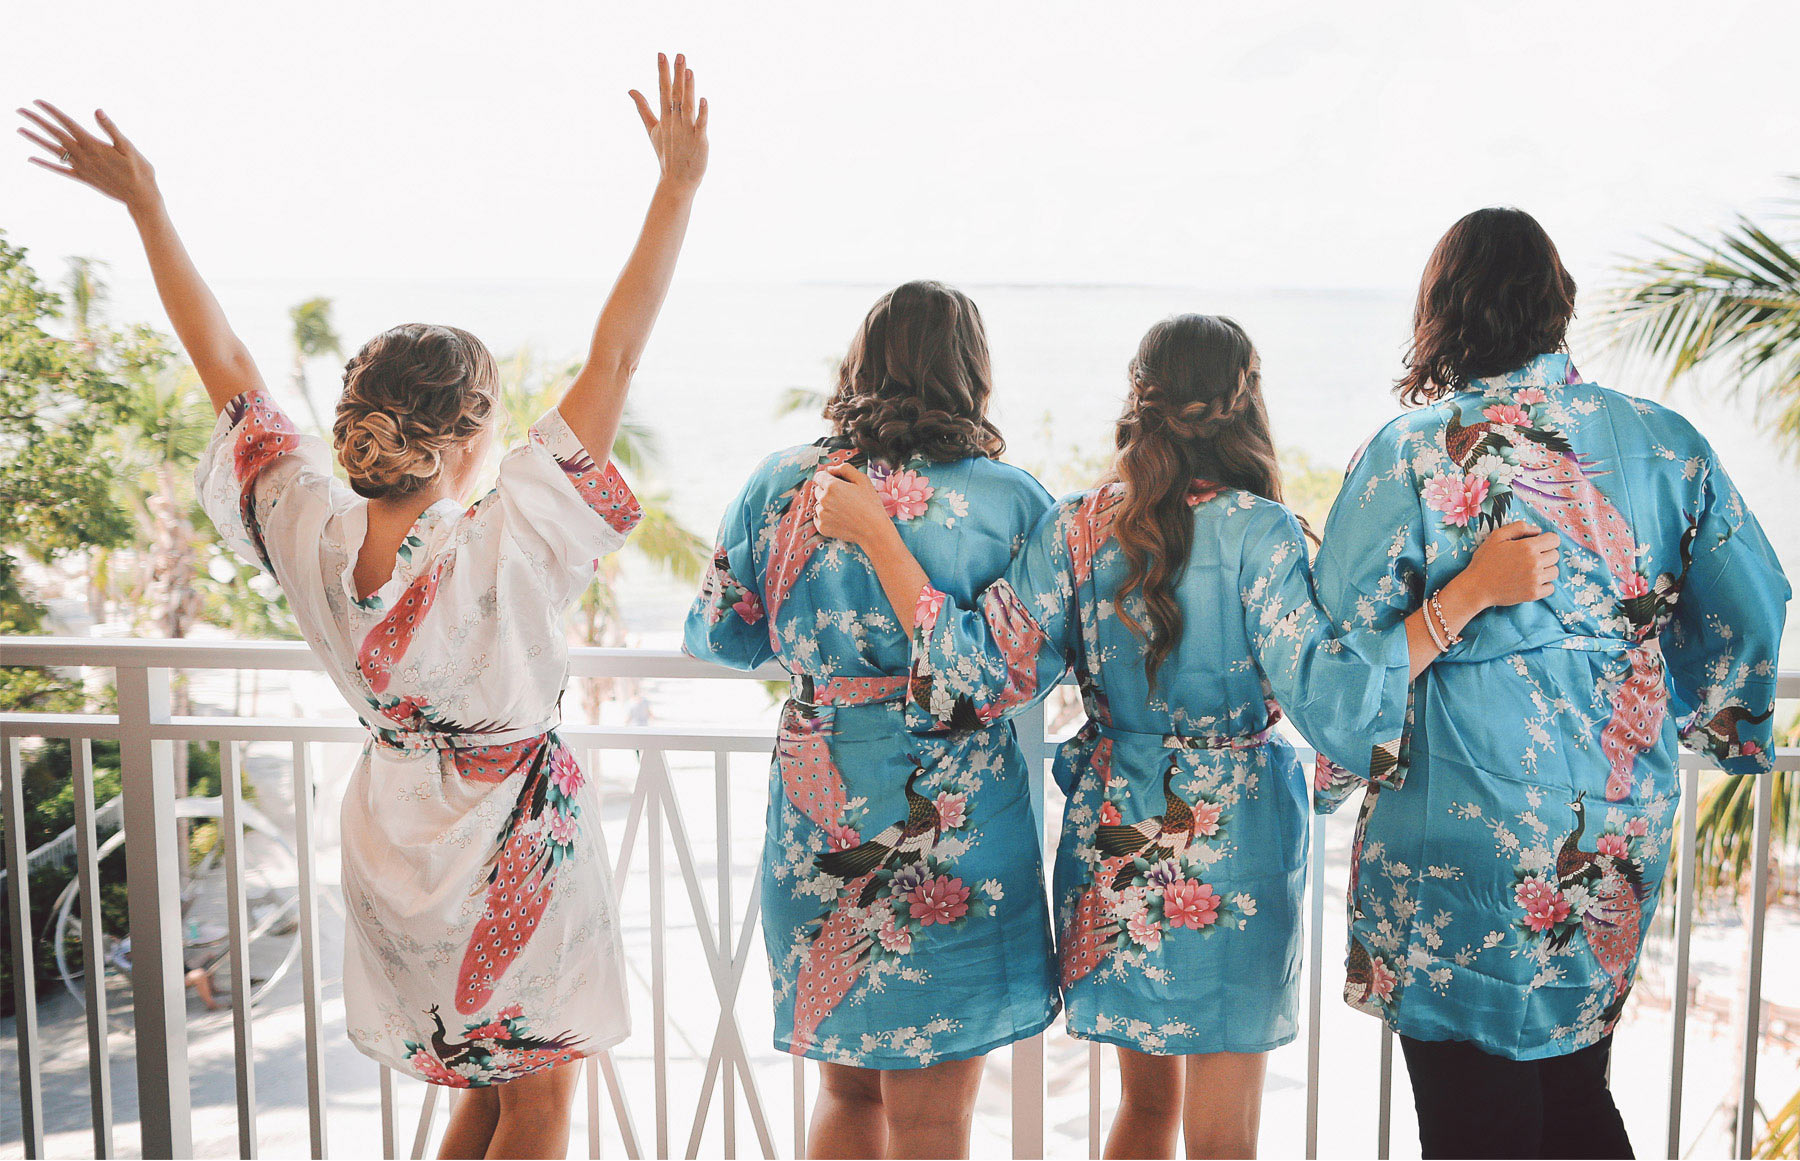 01-Key-Largo-Florida-Keys-Wedding-Photographer-by-Andrew-Vick-Photography-Playa-Largo-Resort-and-Spa-Hotel-Destination-Winter-Getting-Ready-Bride-Bridesmaids-Robes-Vintage-Carrie-and-Brian.jpg